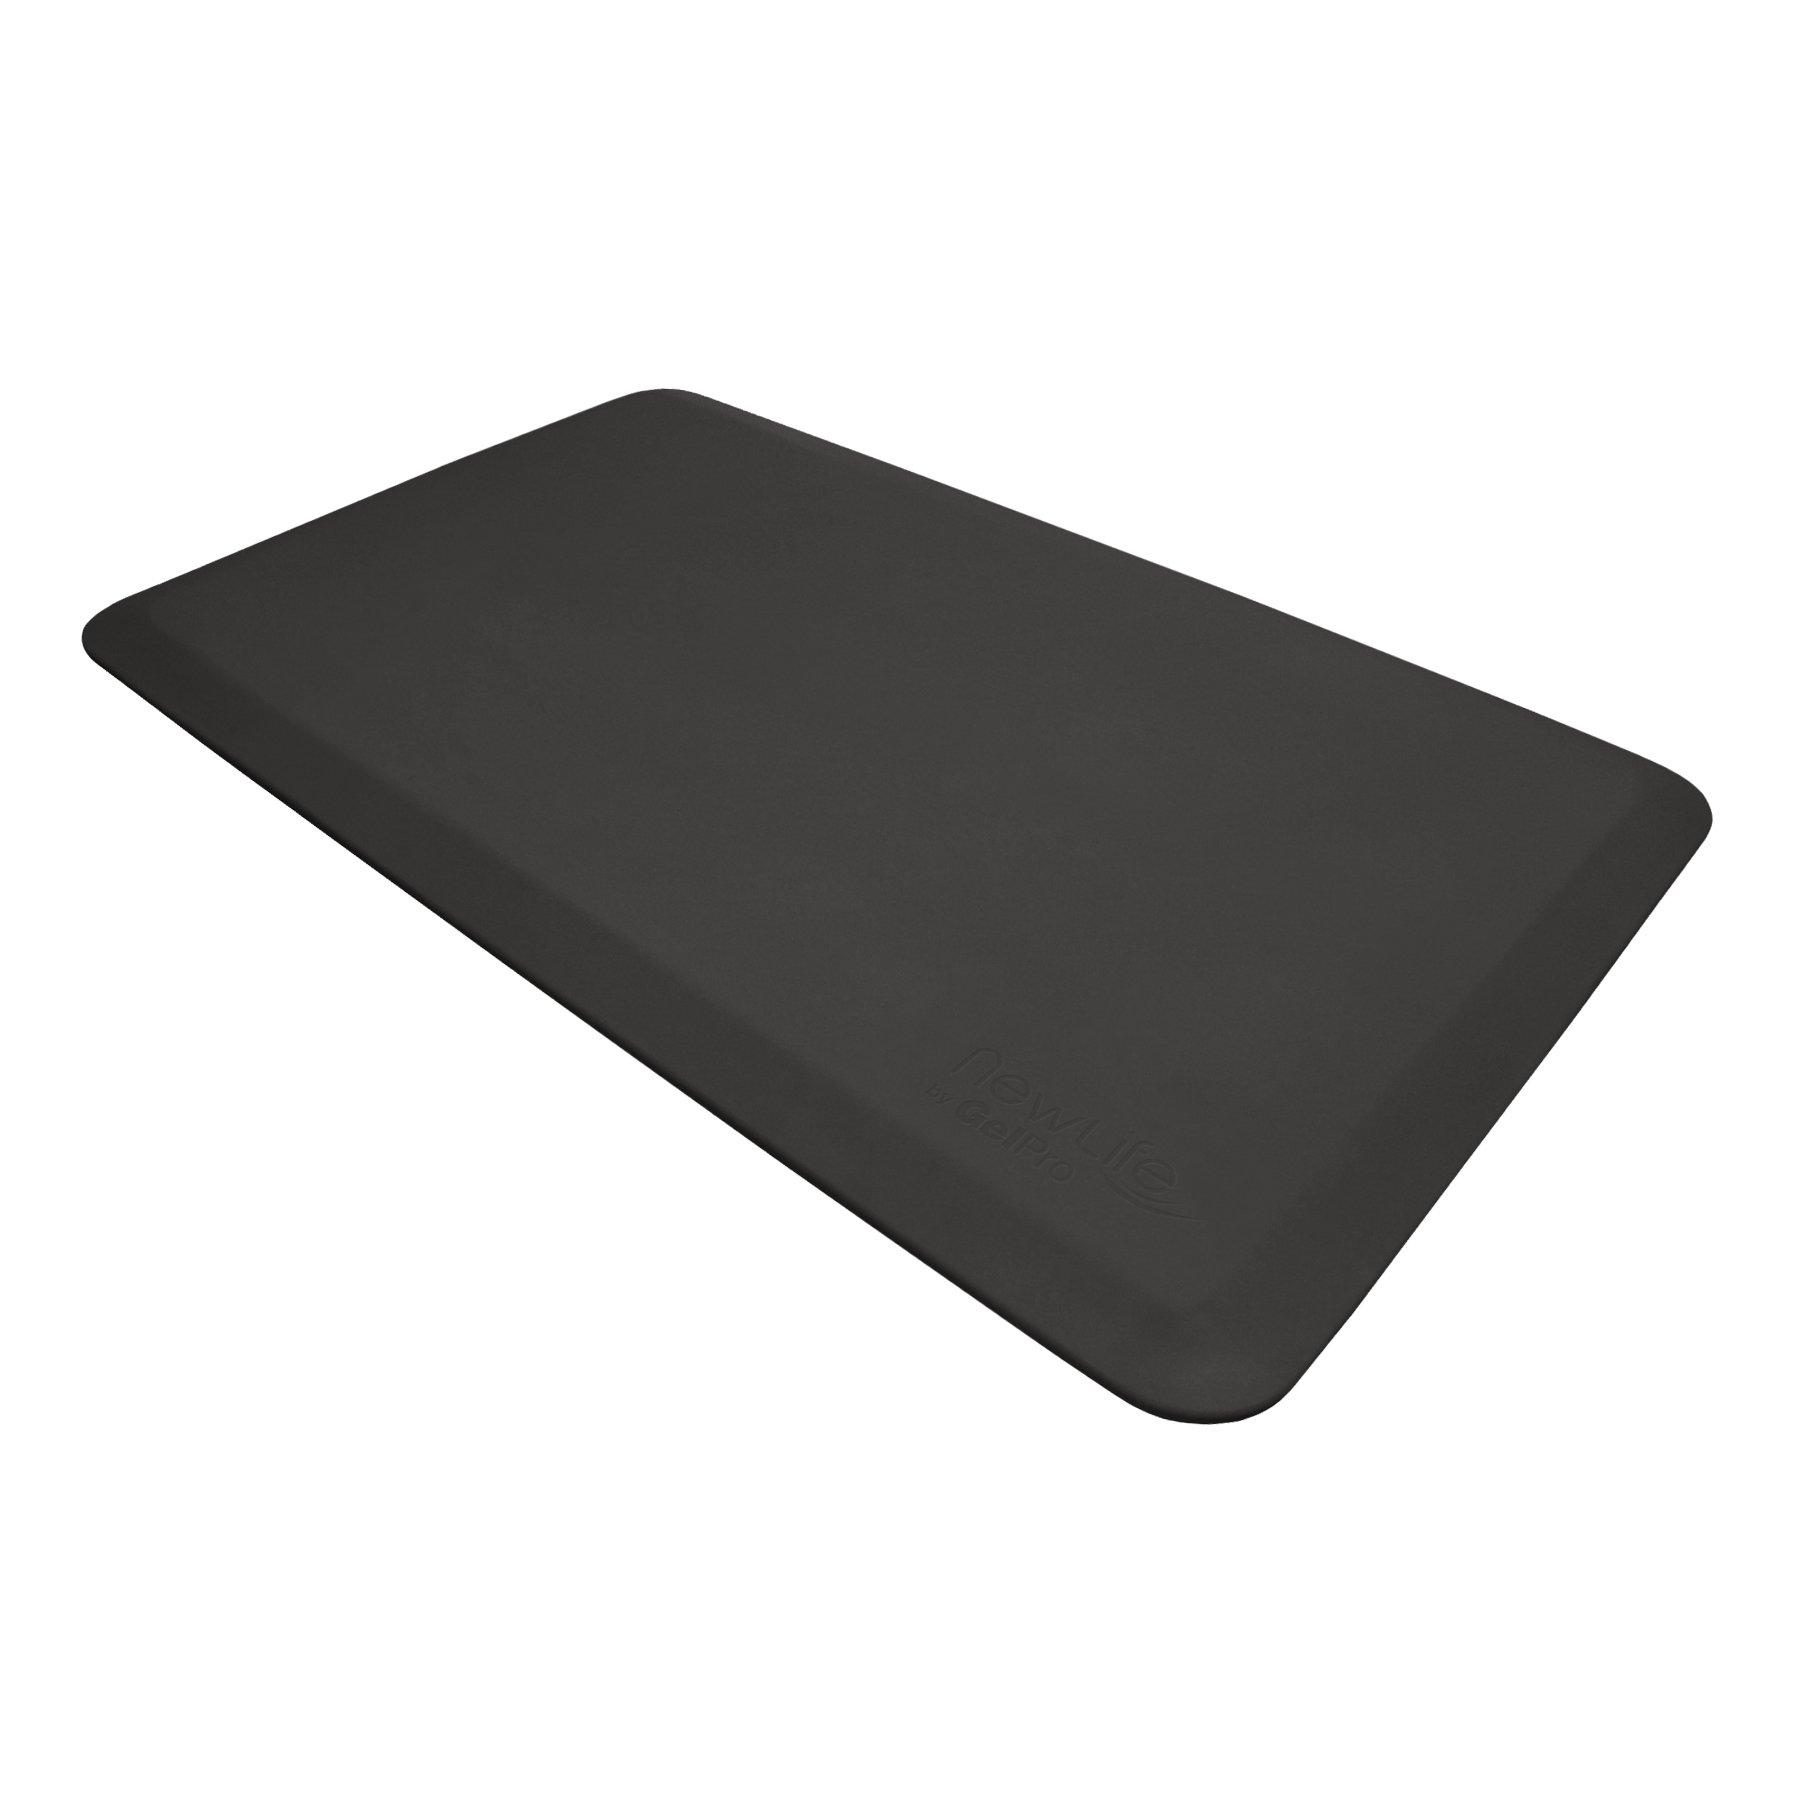 "NewLife by GelPro Anti Fatigue Mat: Eco-Pro Foam Anti-Fatigue Comfort Mat - Standing Desk Pad - Professional Floor Mats for Commercial & Industrial Work - 24"" x 36"" Non Slip Ergonomic Mat - Black"